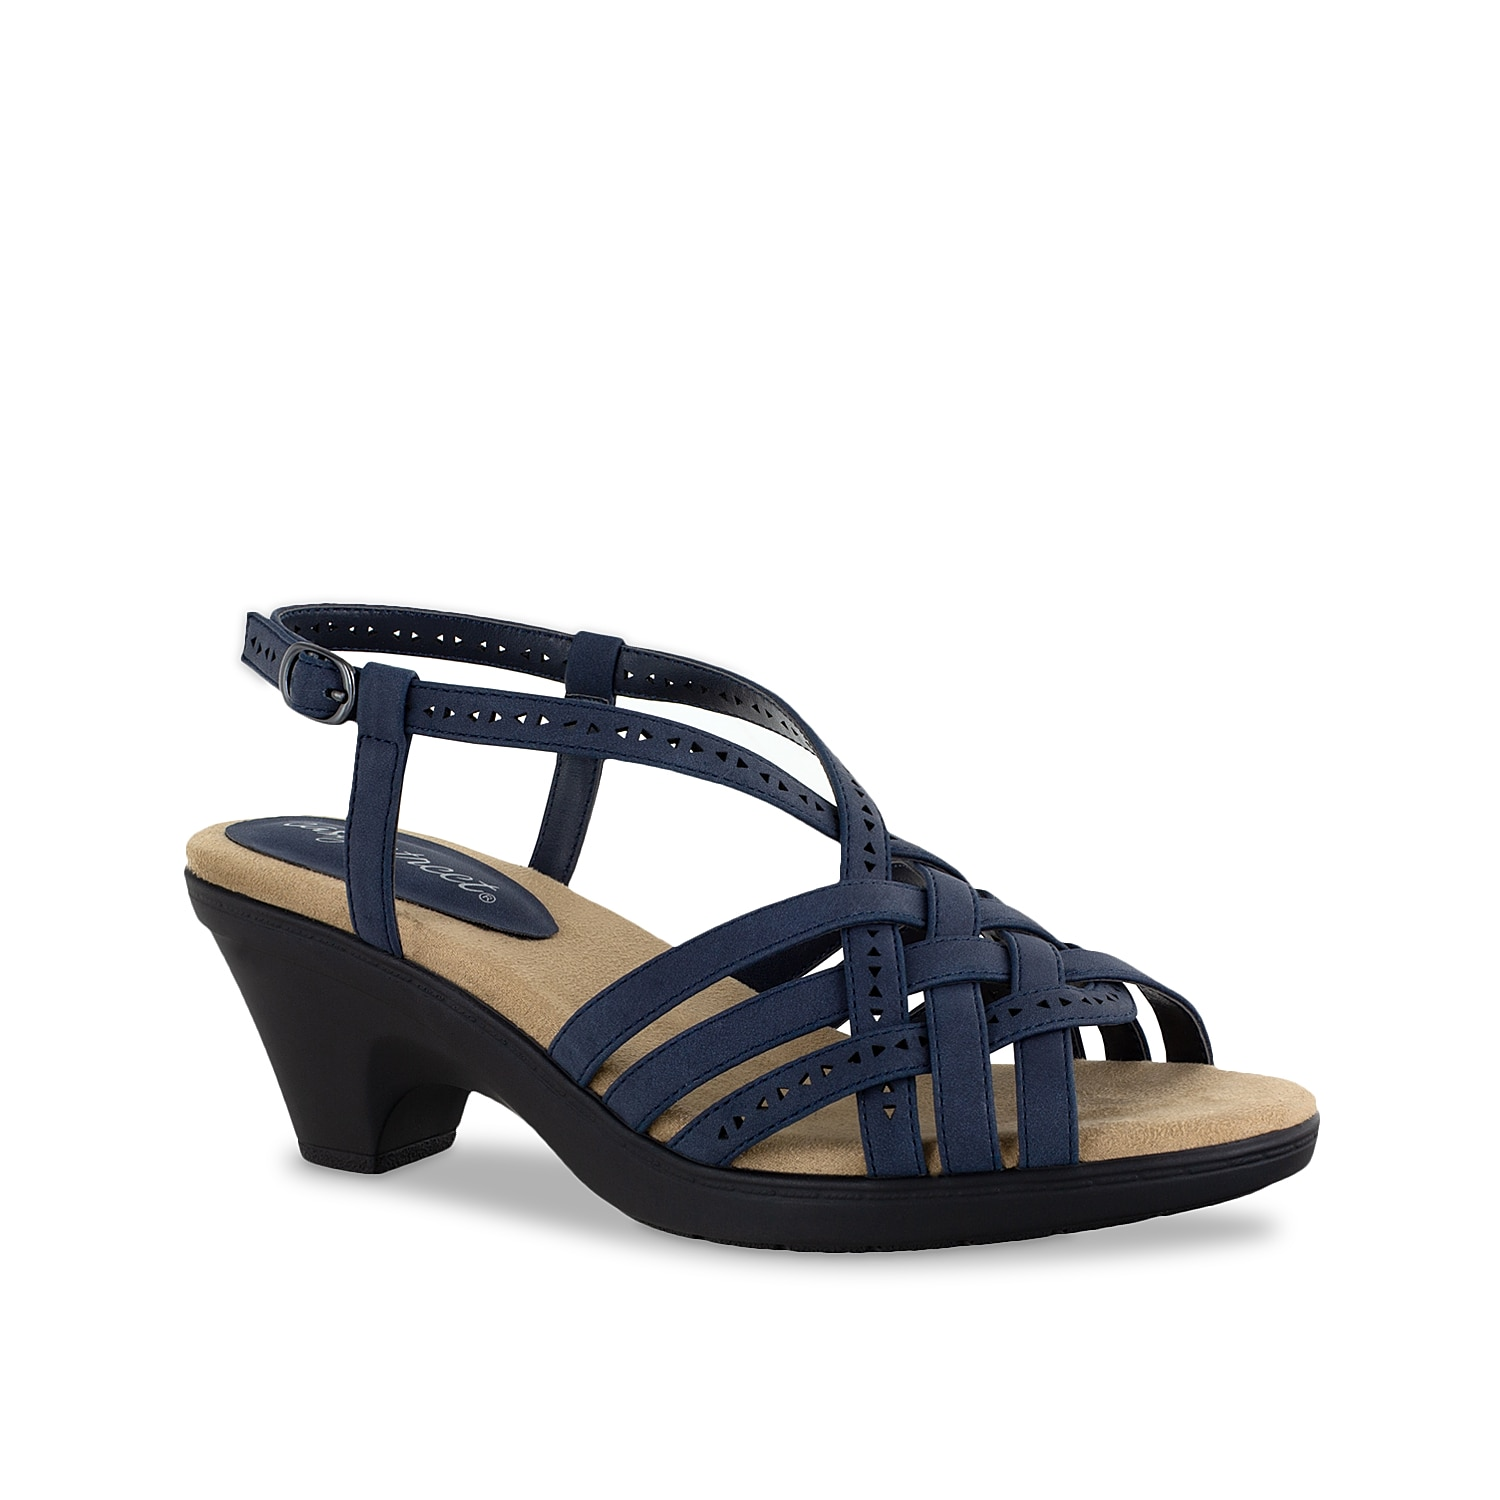 You can never go wrong with the Jackson sandal from Easy Street. This silhouette is fashioned with a strappy upper and a cushioned footbed that allows you to walk around with ease.